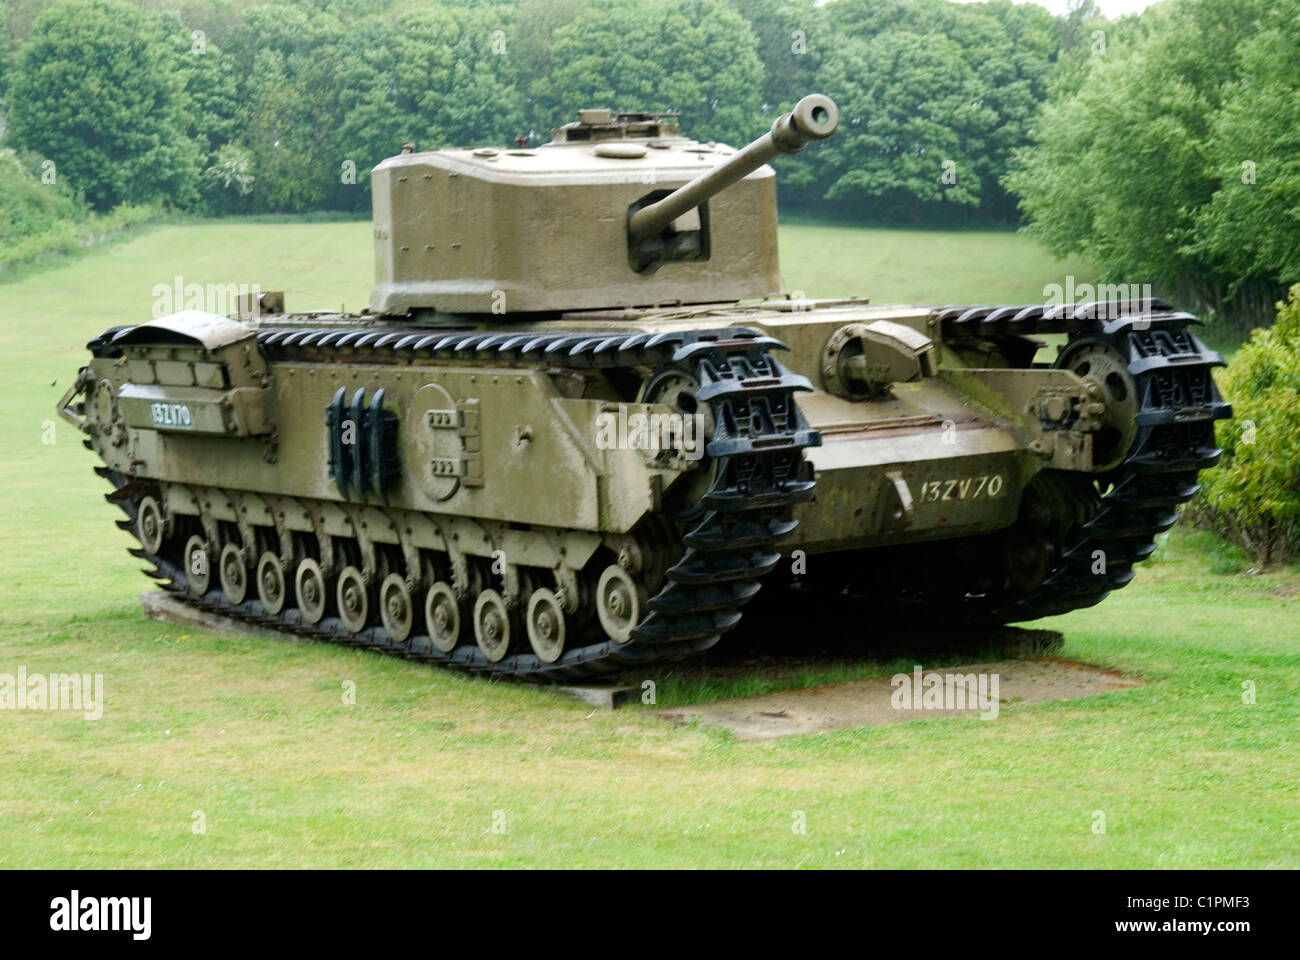 England, Norfolk, Weybourne, Muckleburgh Collection, tank - Stock Image